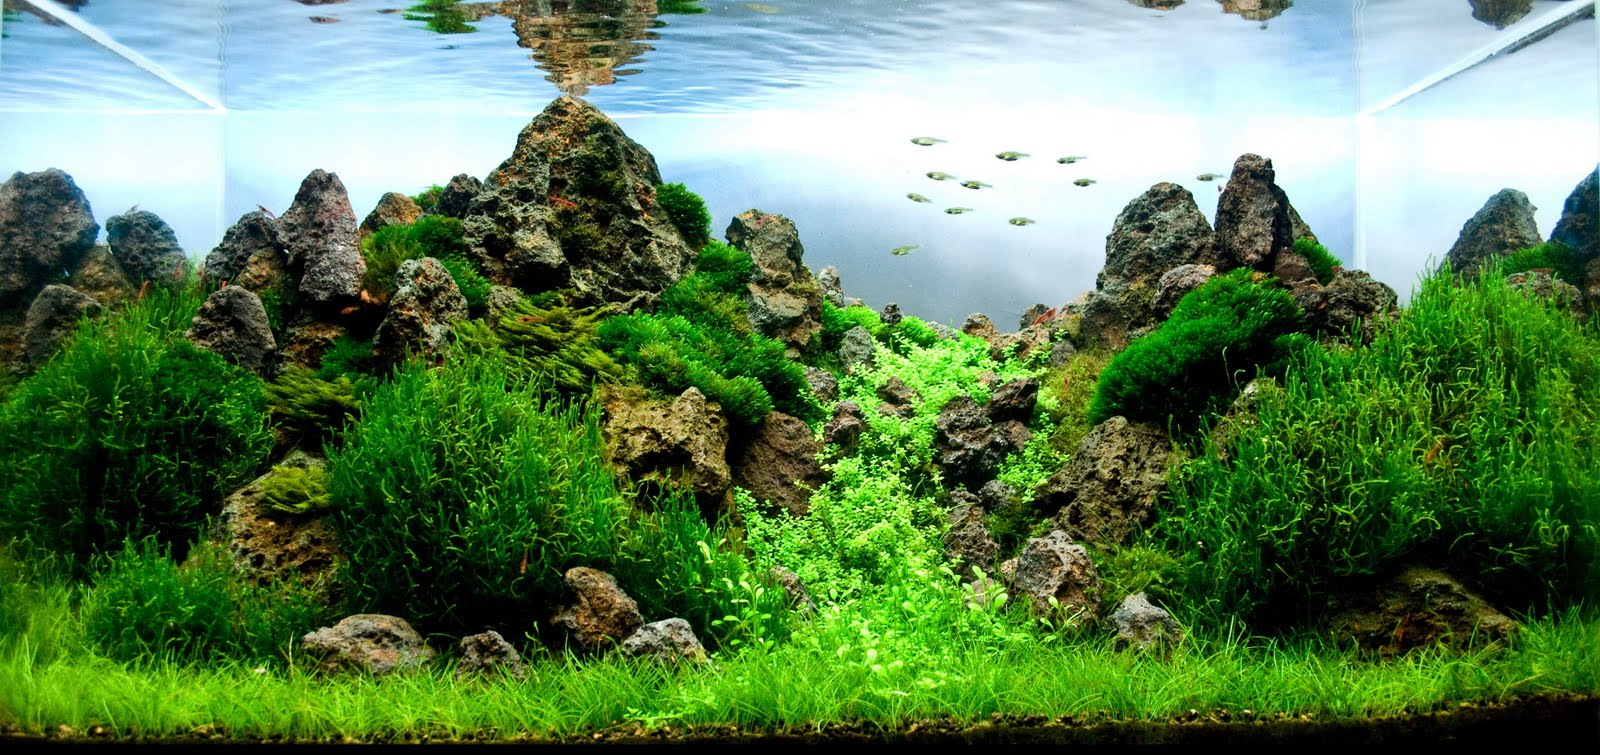 Manage your freshwater aquarium, tropical fishes and plants: Aquatic ...